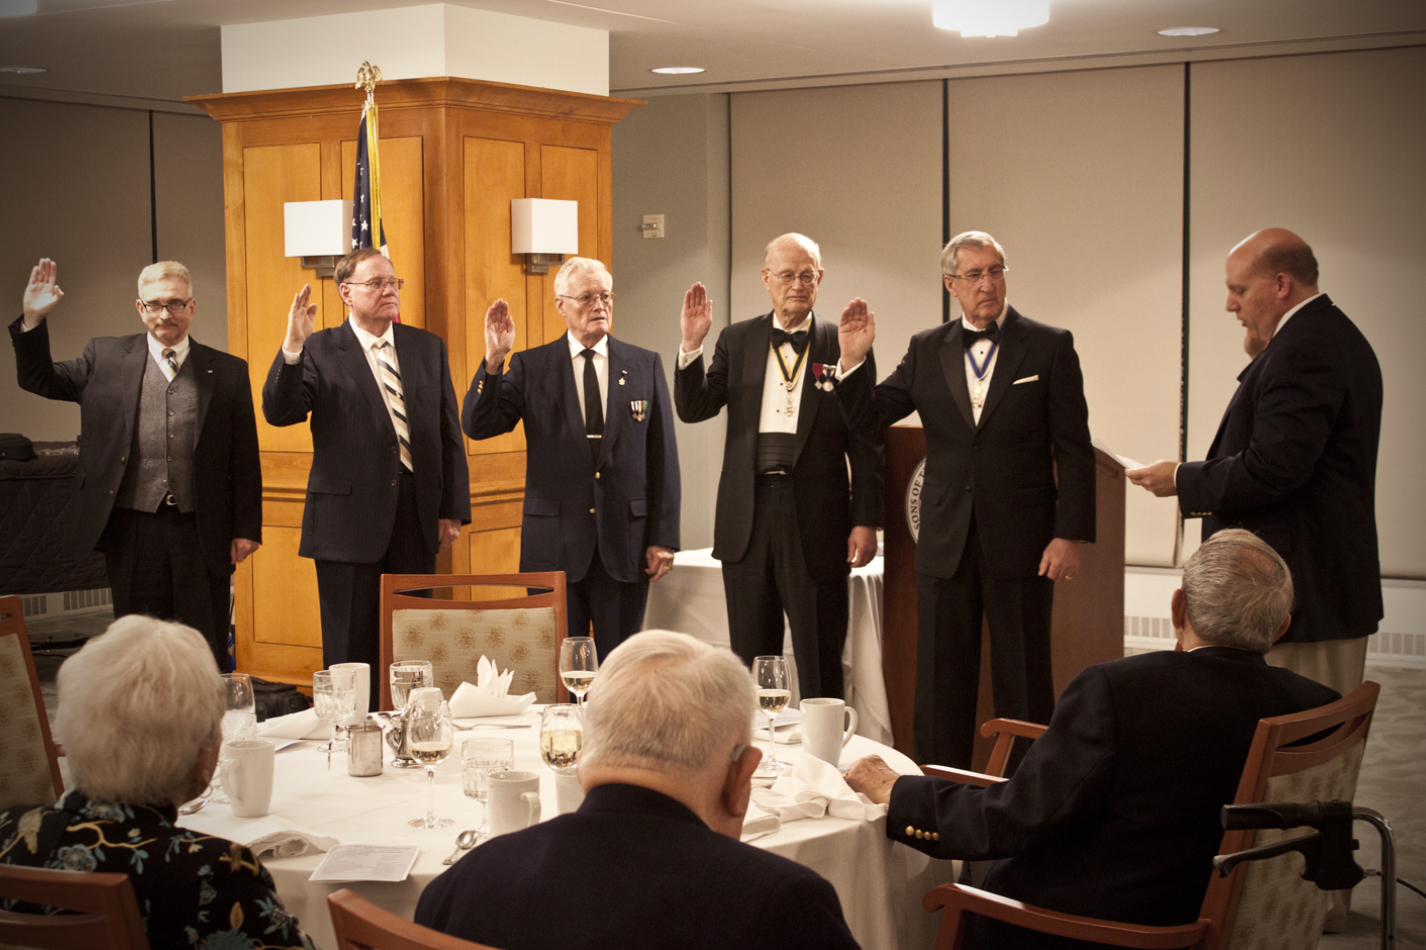 Officers of the Norfolk Chapter SAR are sworn in by VASSAR President Mike Elston